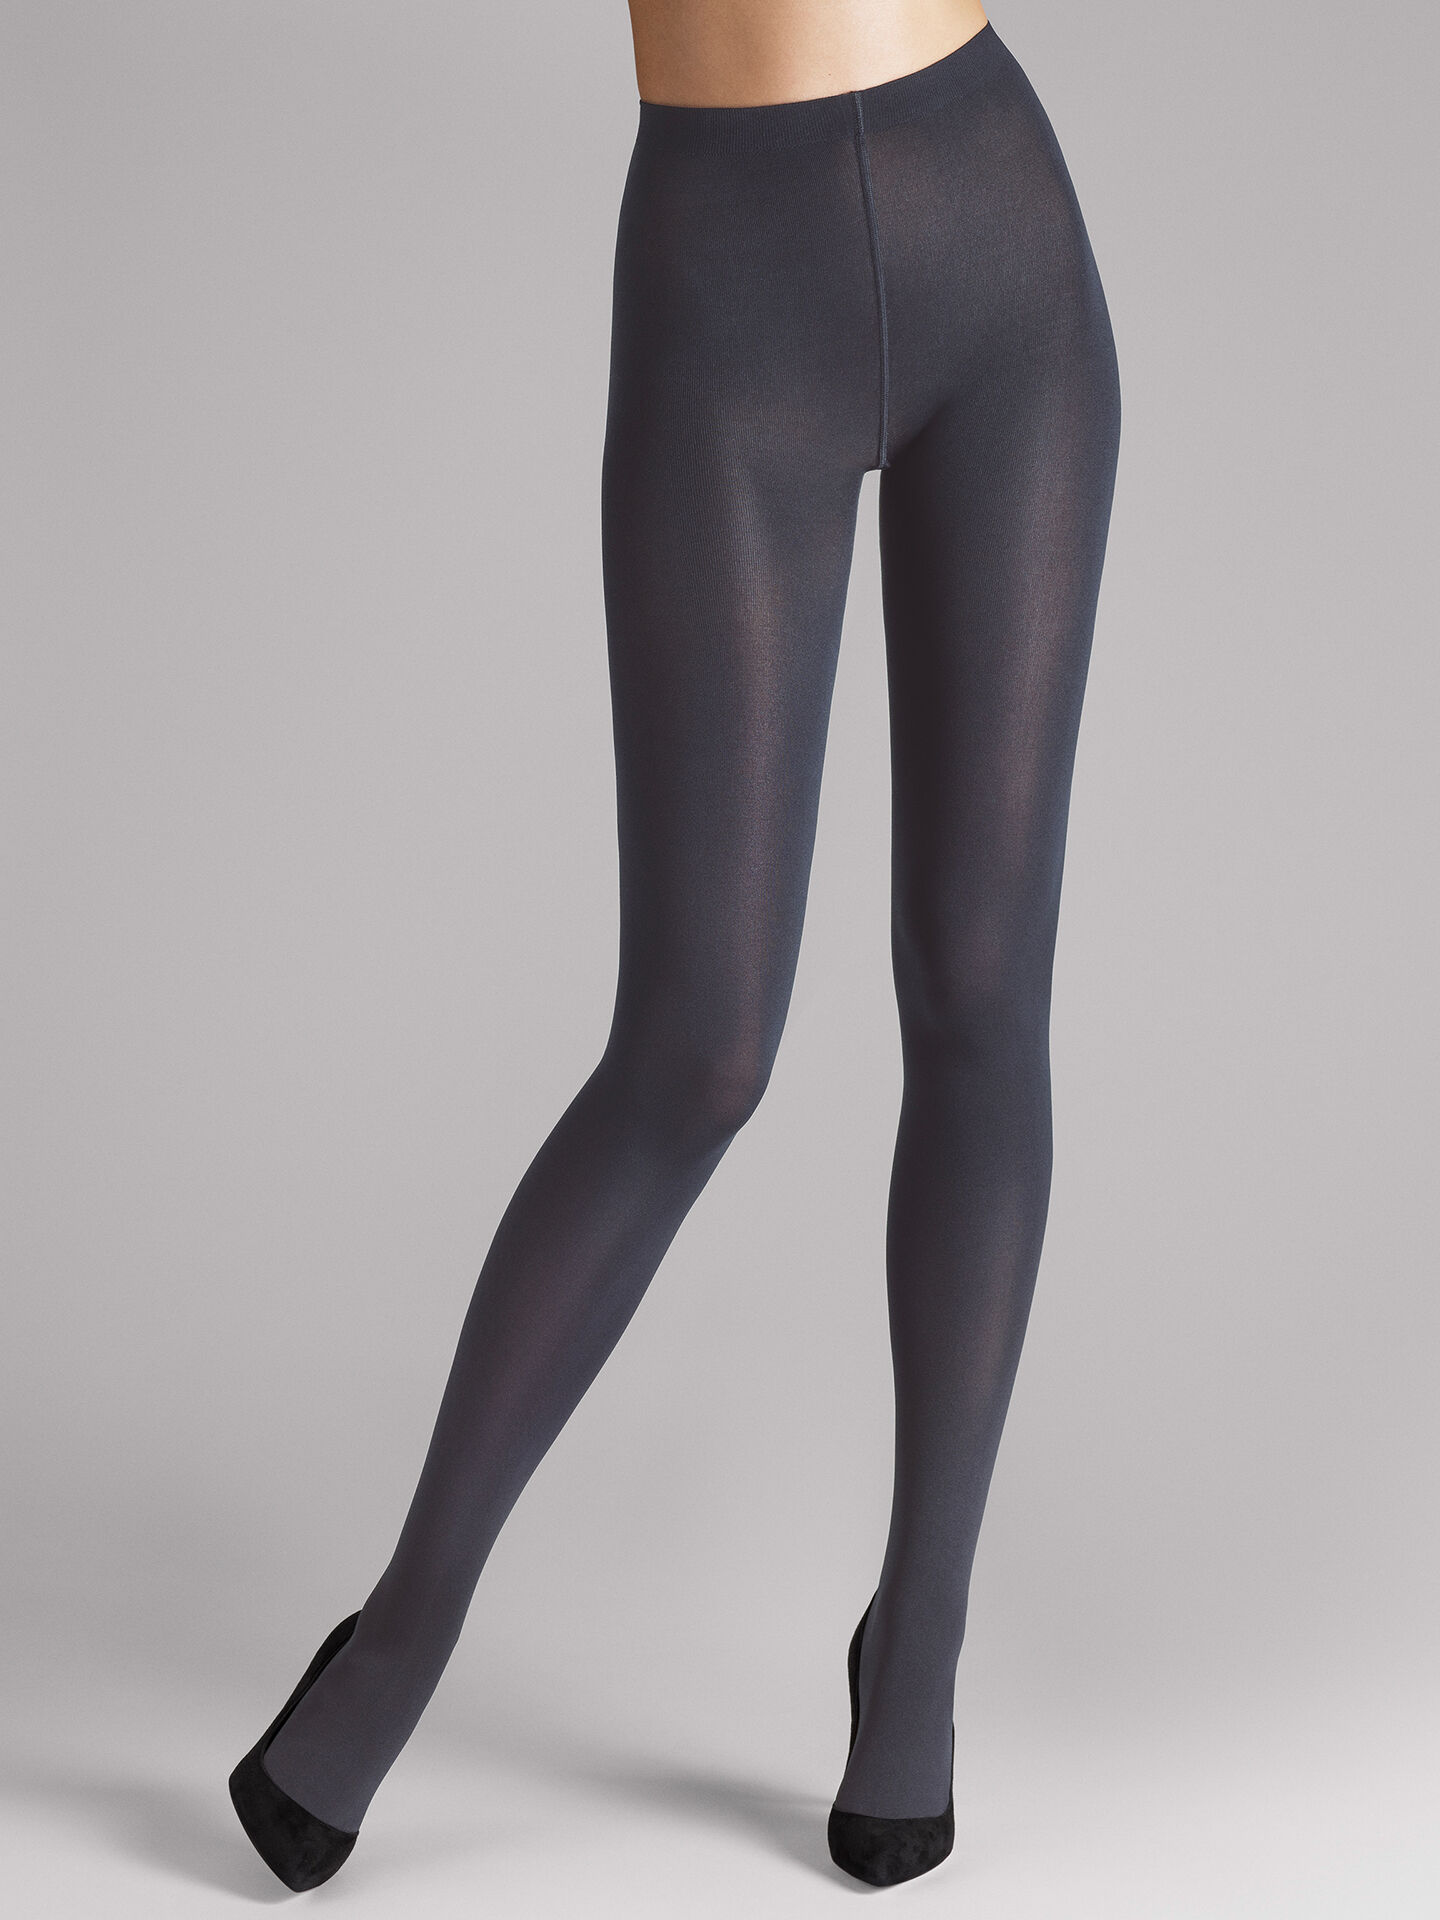 also mat opaque tights wolford rh wolfordshop